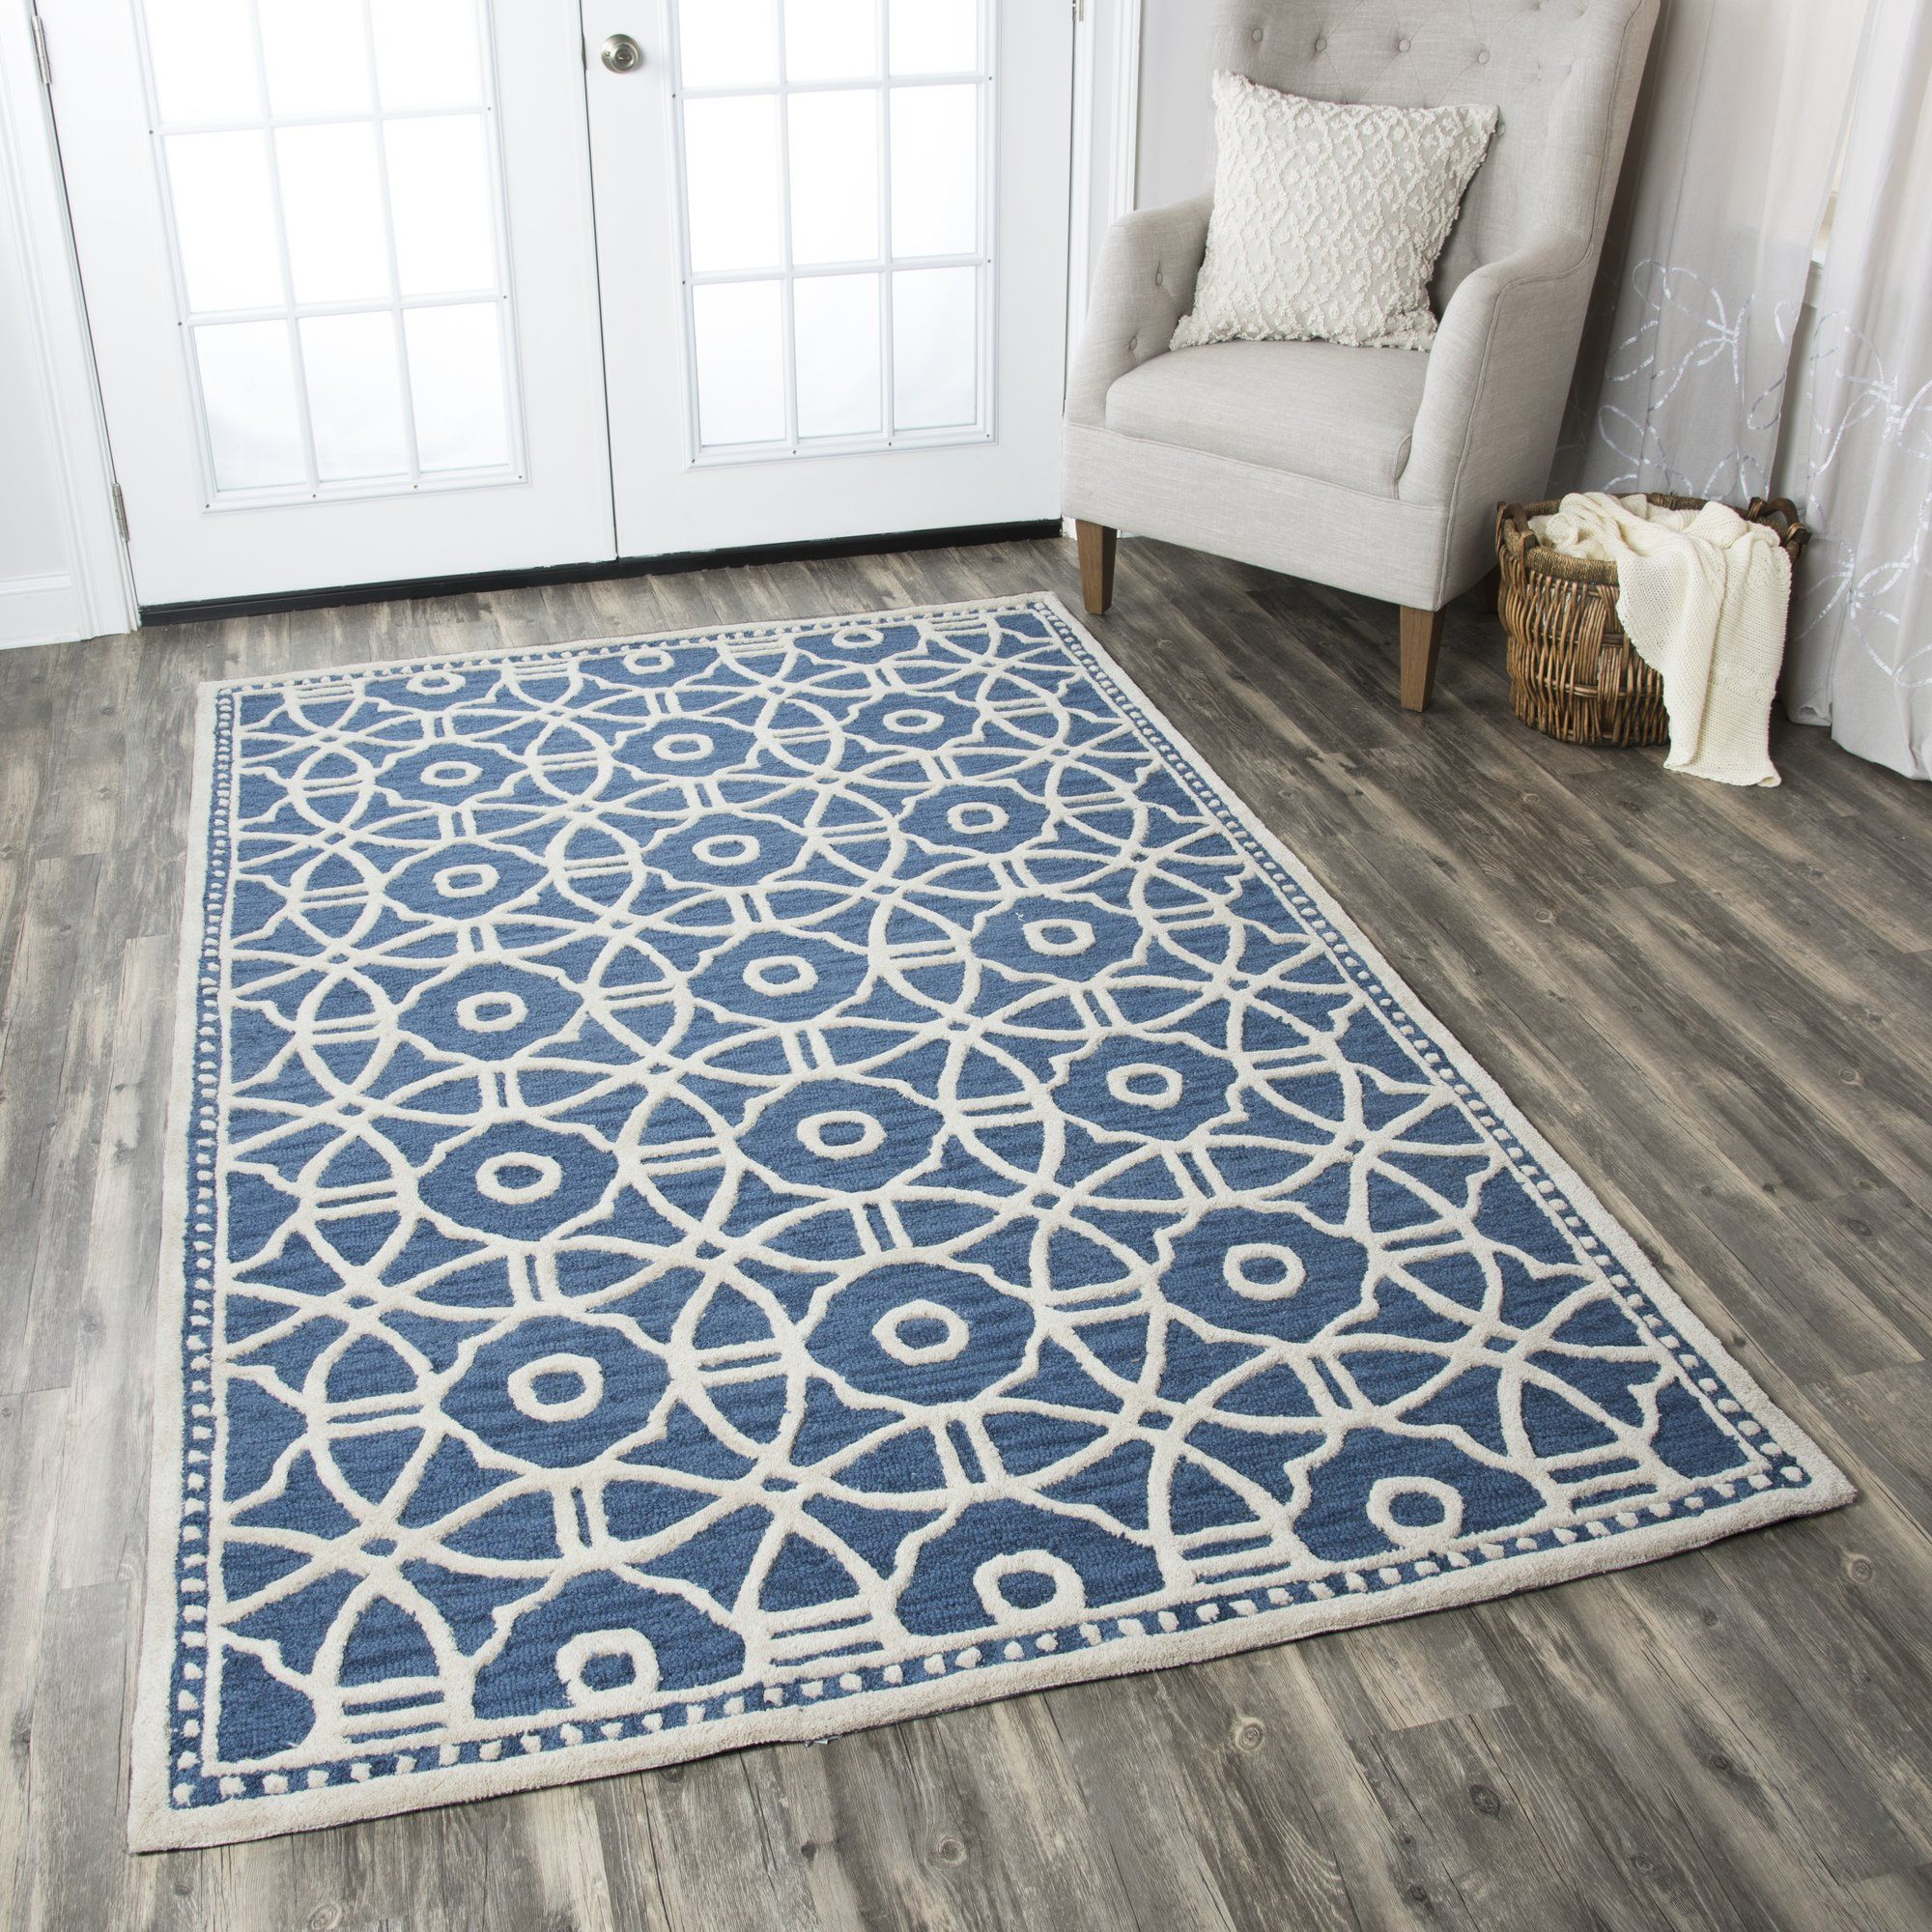 Wright Handmade Tufted Wool Blue Rug In 2020 Rizzy Home Area Rugs Rugs